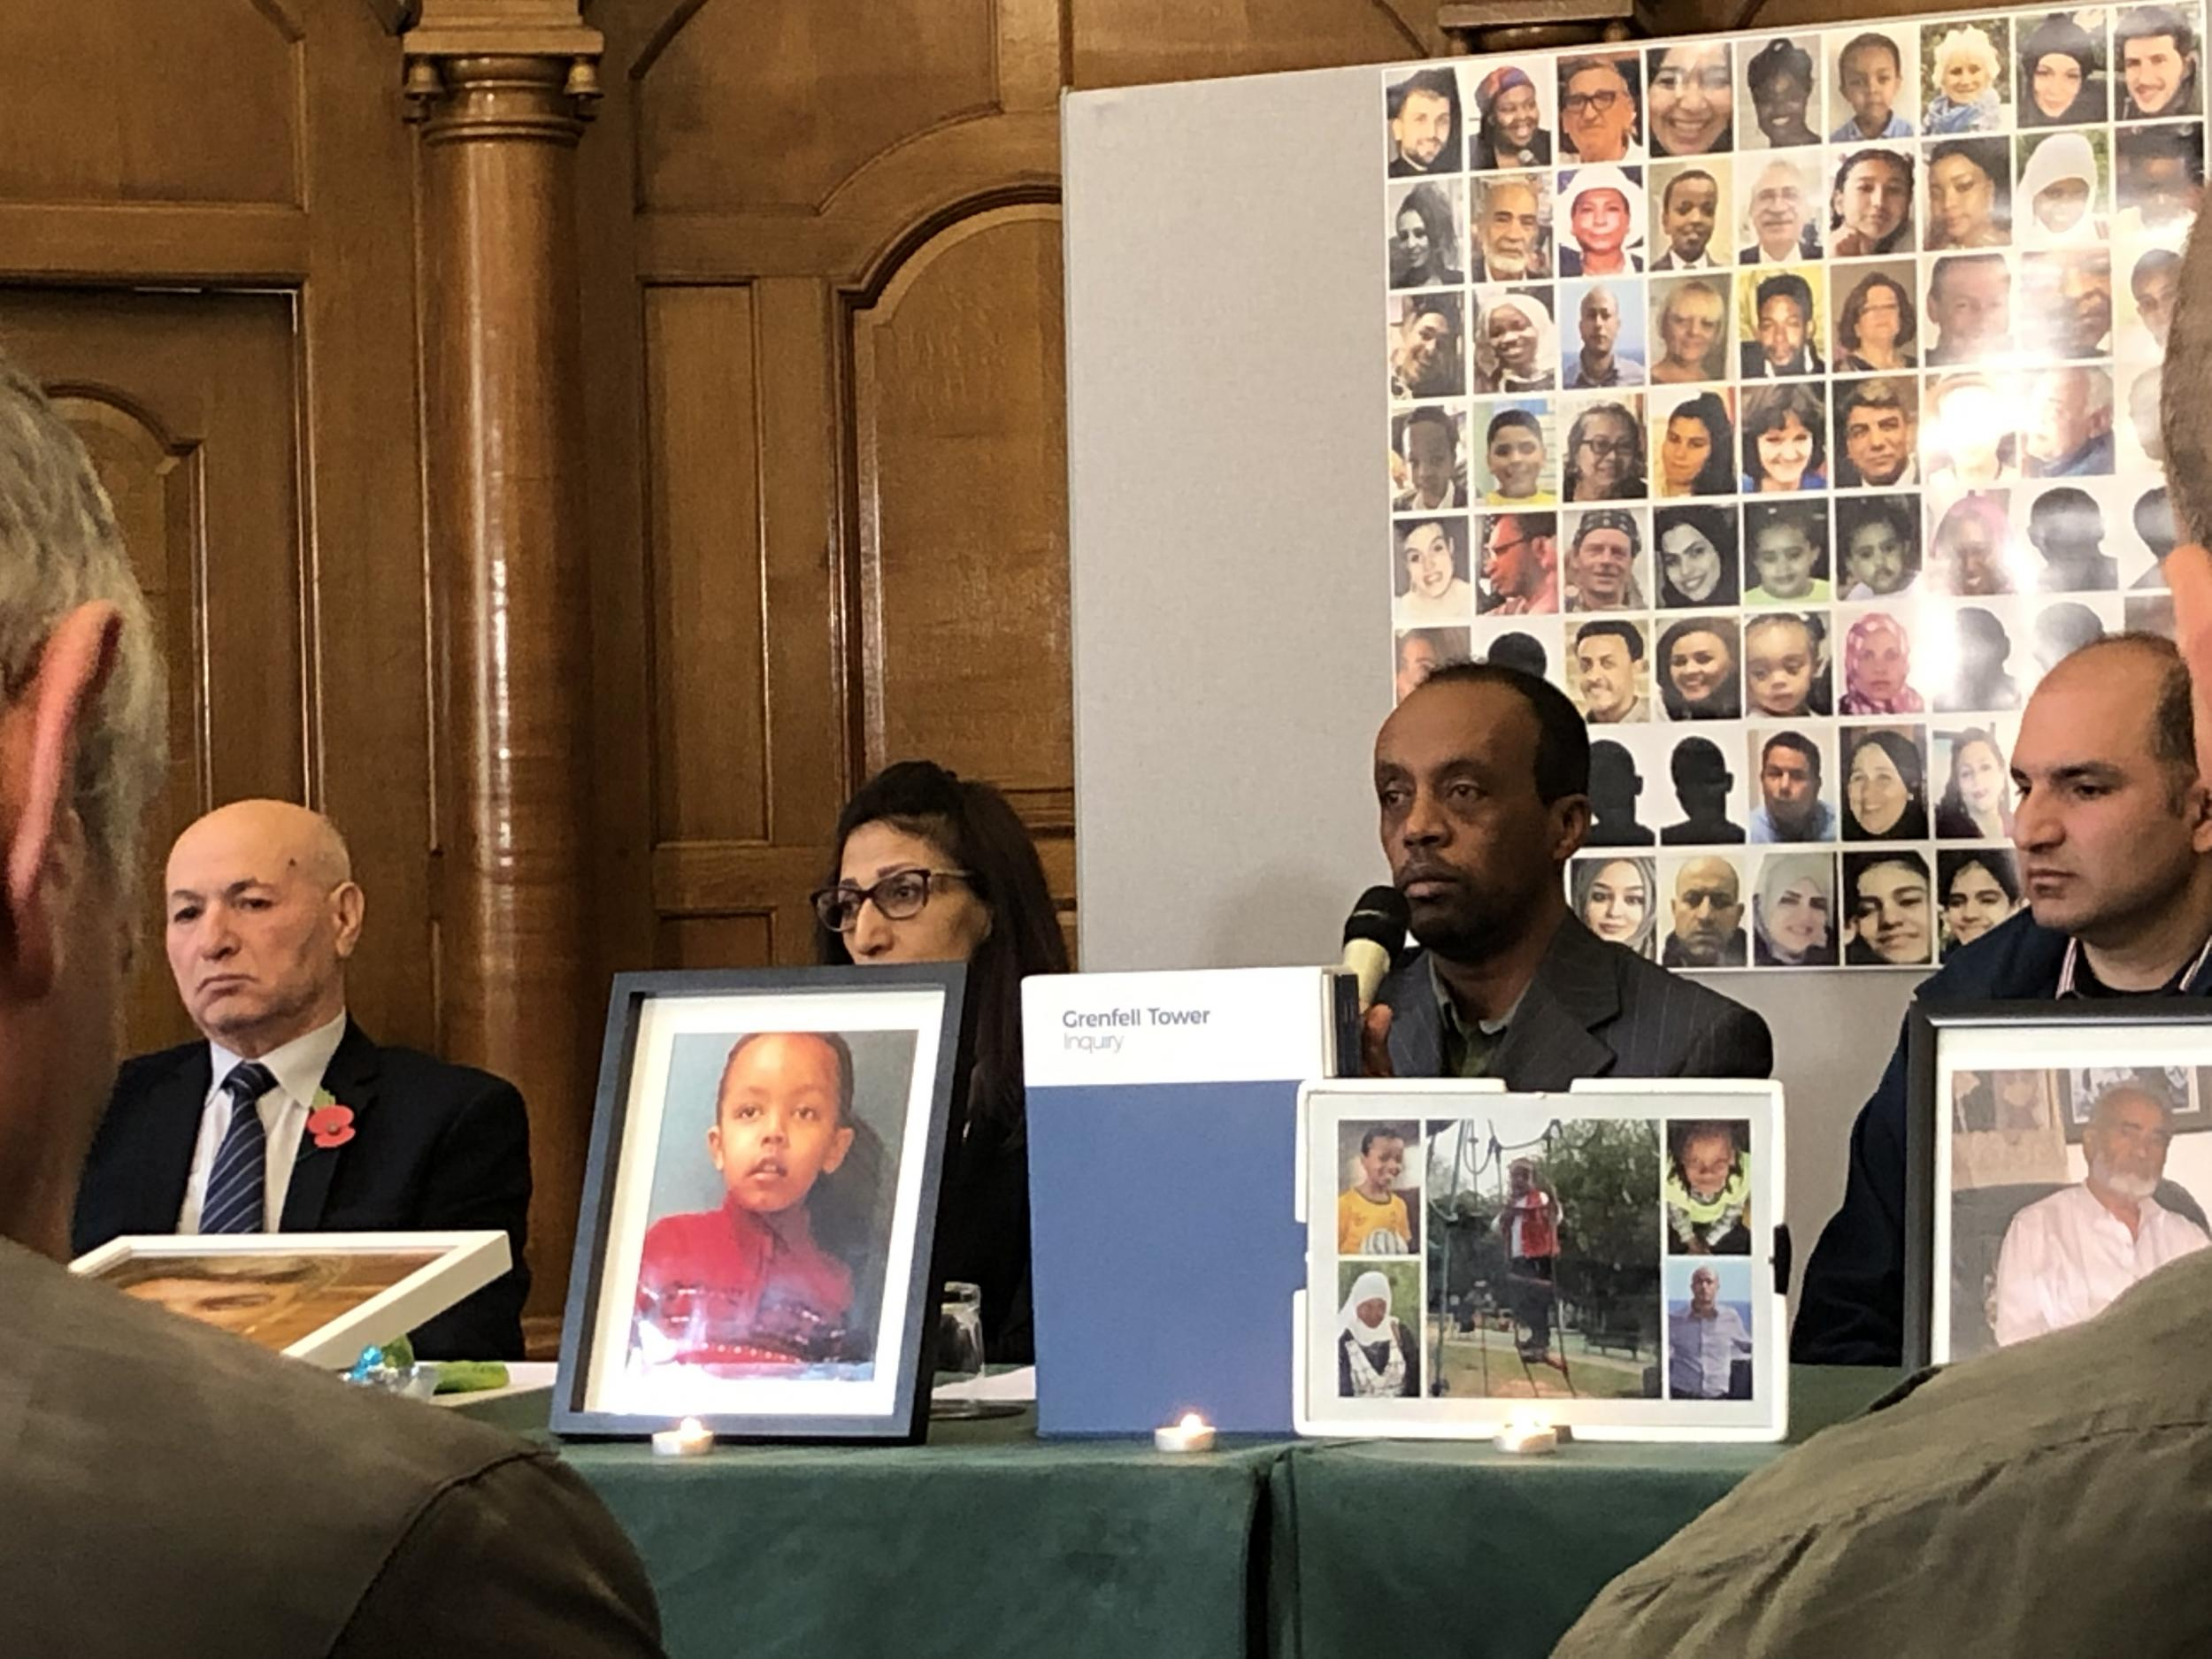 Grenfell survivors call for top fire brigade officers to be prosecuted after report finds 'stay put' advice cost lives